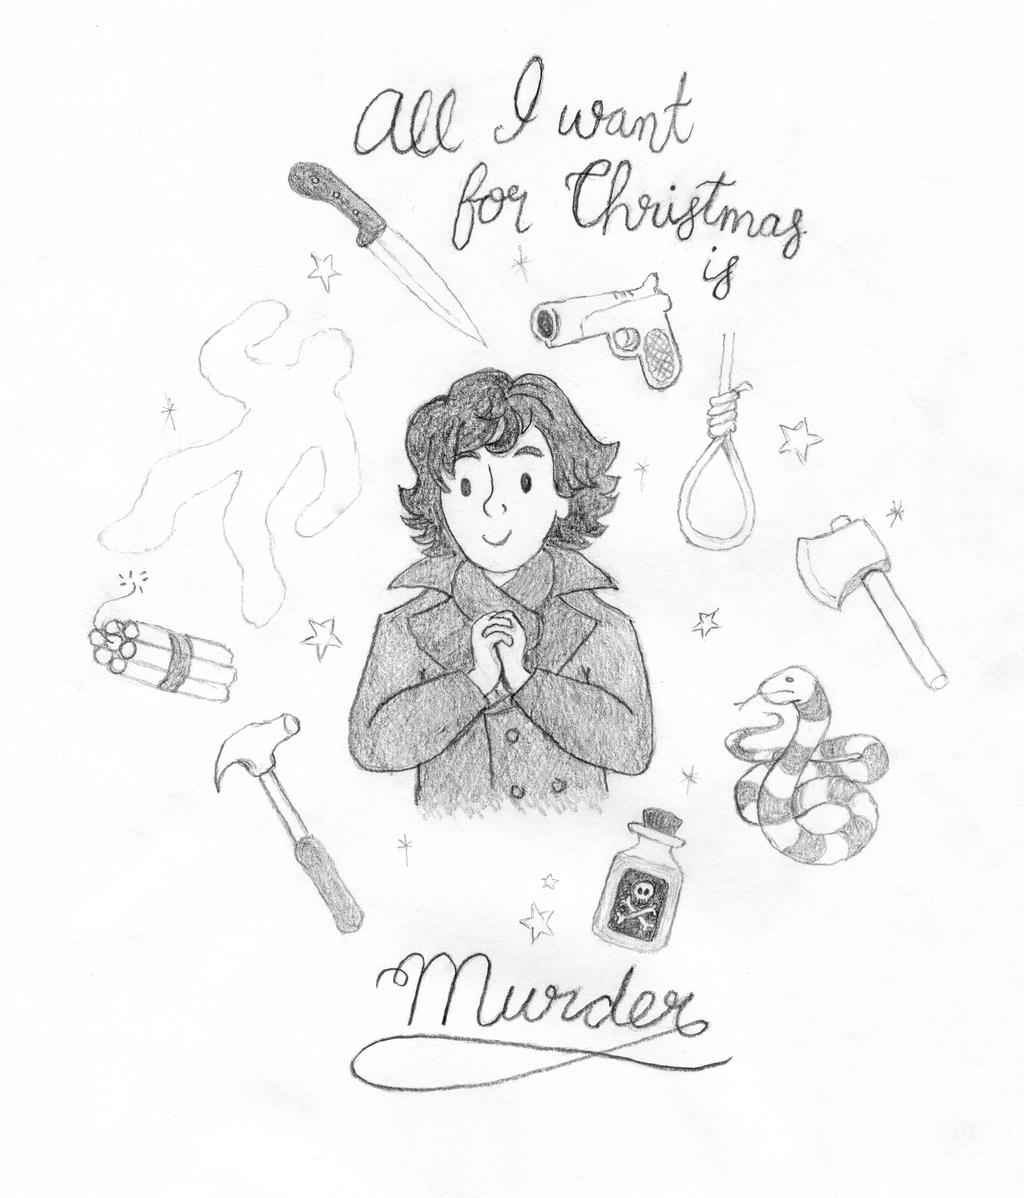 http://img13.deviantart.net/f2b2/i/2016/339/4/7/sherlock___all_i_want_for_christmas_is_murder_by_ukaunz-daqp06q.jpg